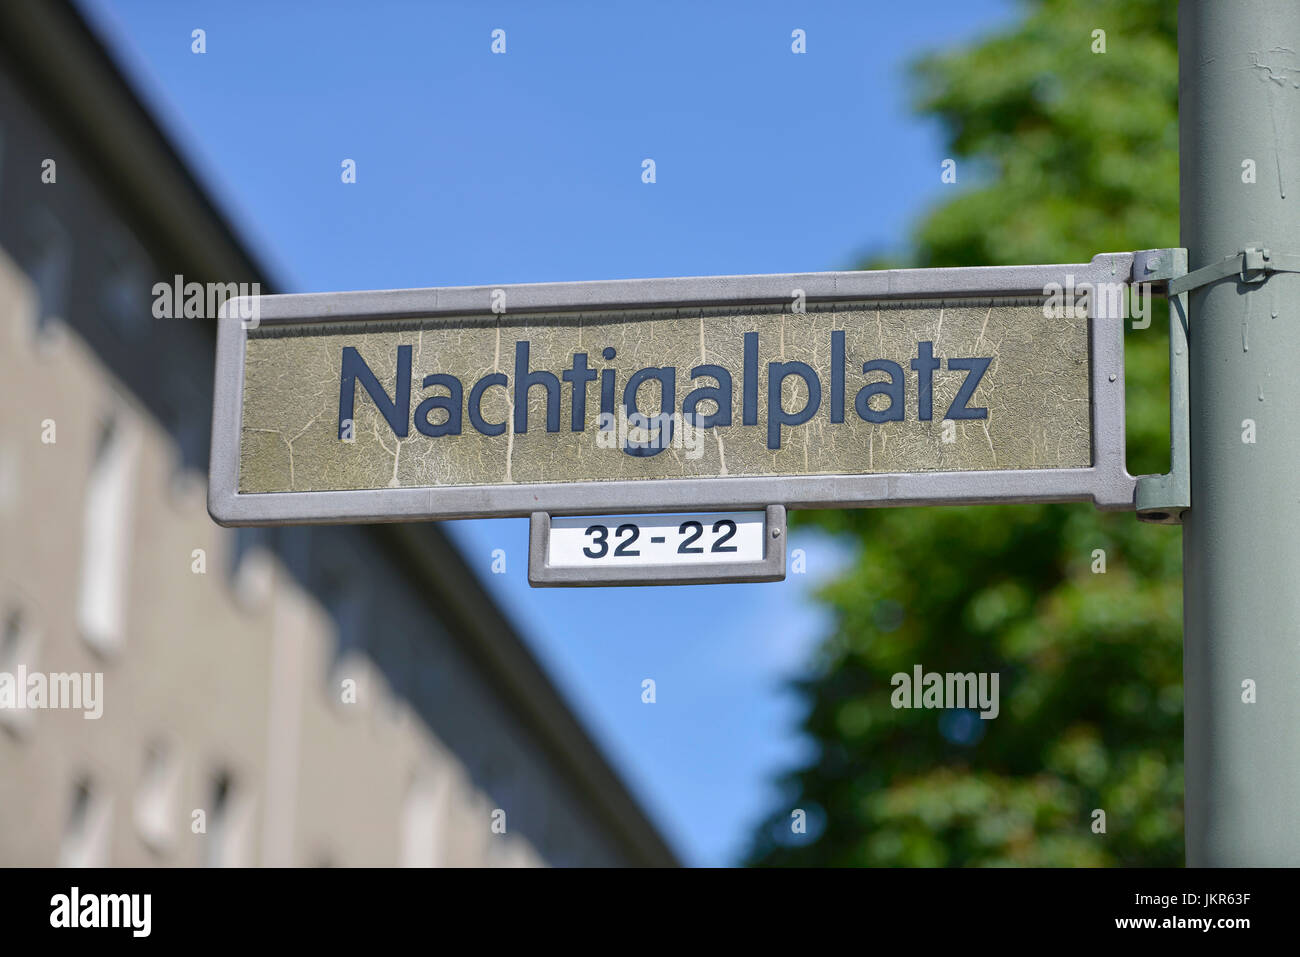 Street sign, African quarter, Wedding, middle, Berlin, Germany, Strassenschild, Afrikanisches Viertel, Mitte, Deutschland - Stock Image